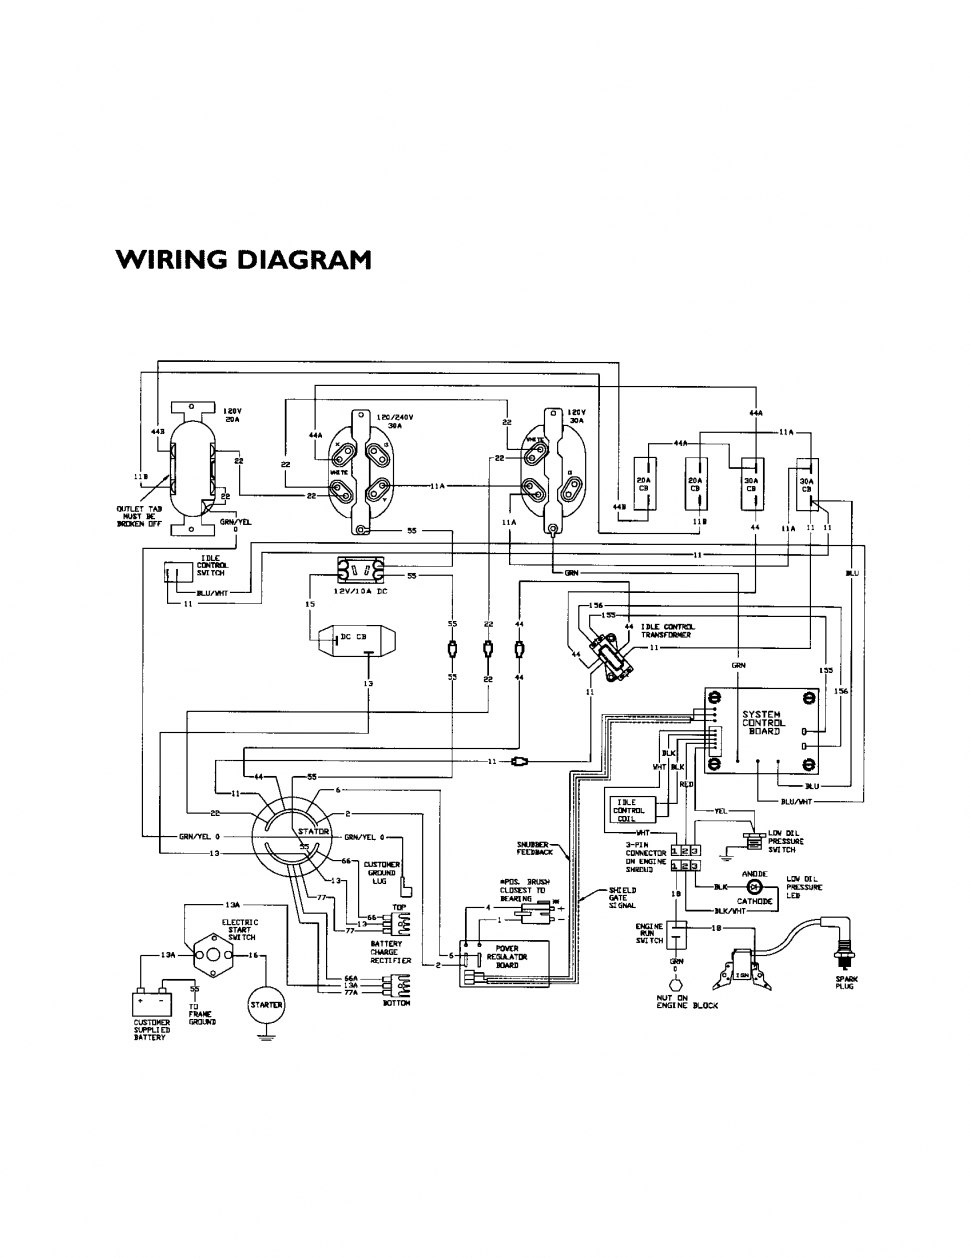 Eaton Transfer Switch Wiring Diagram Collection | Wiring ... on